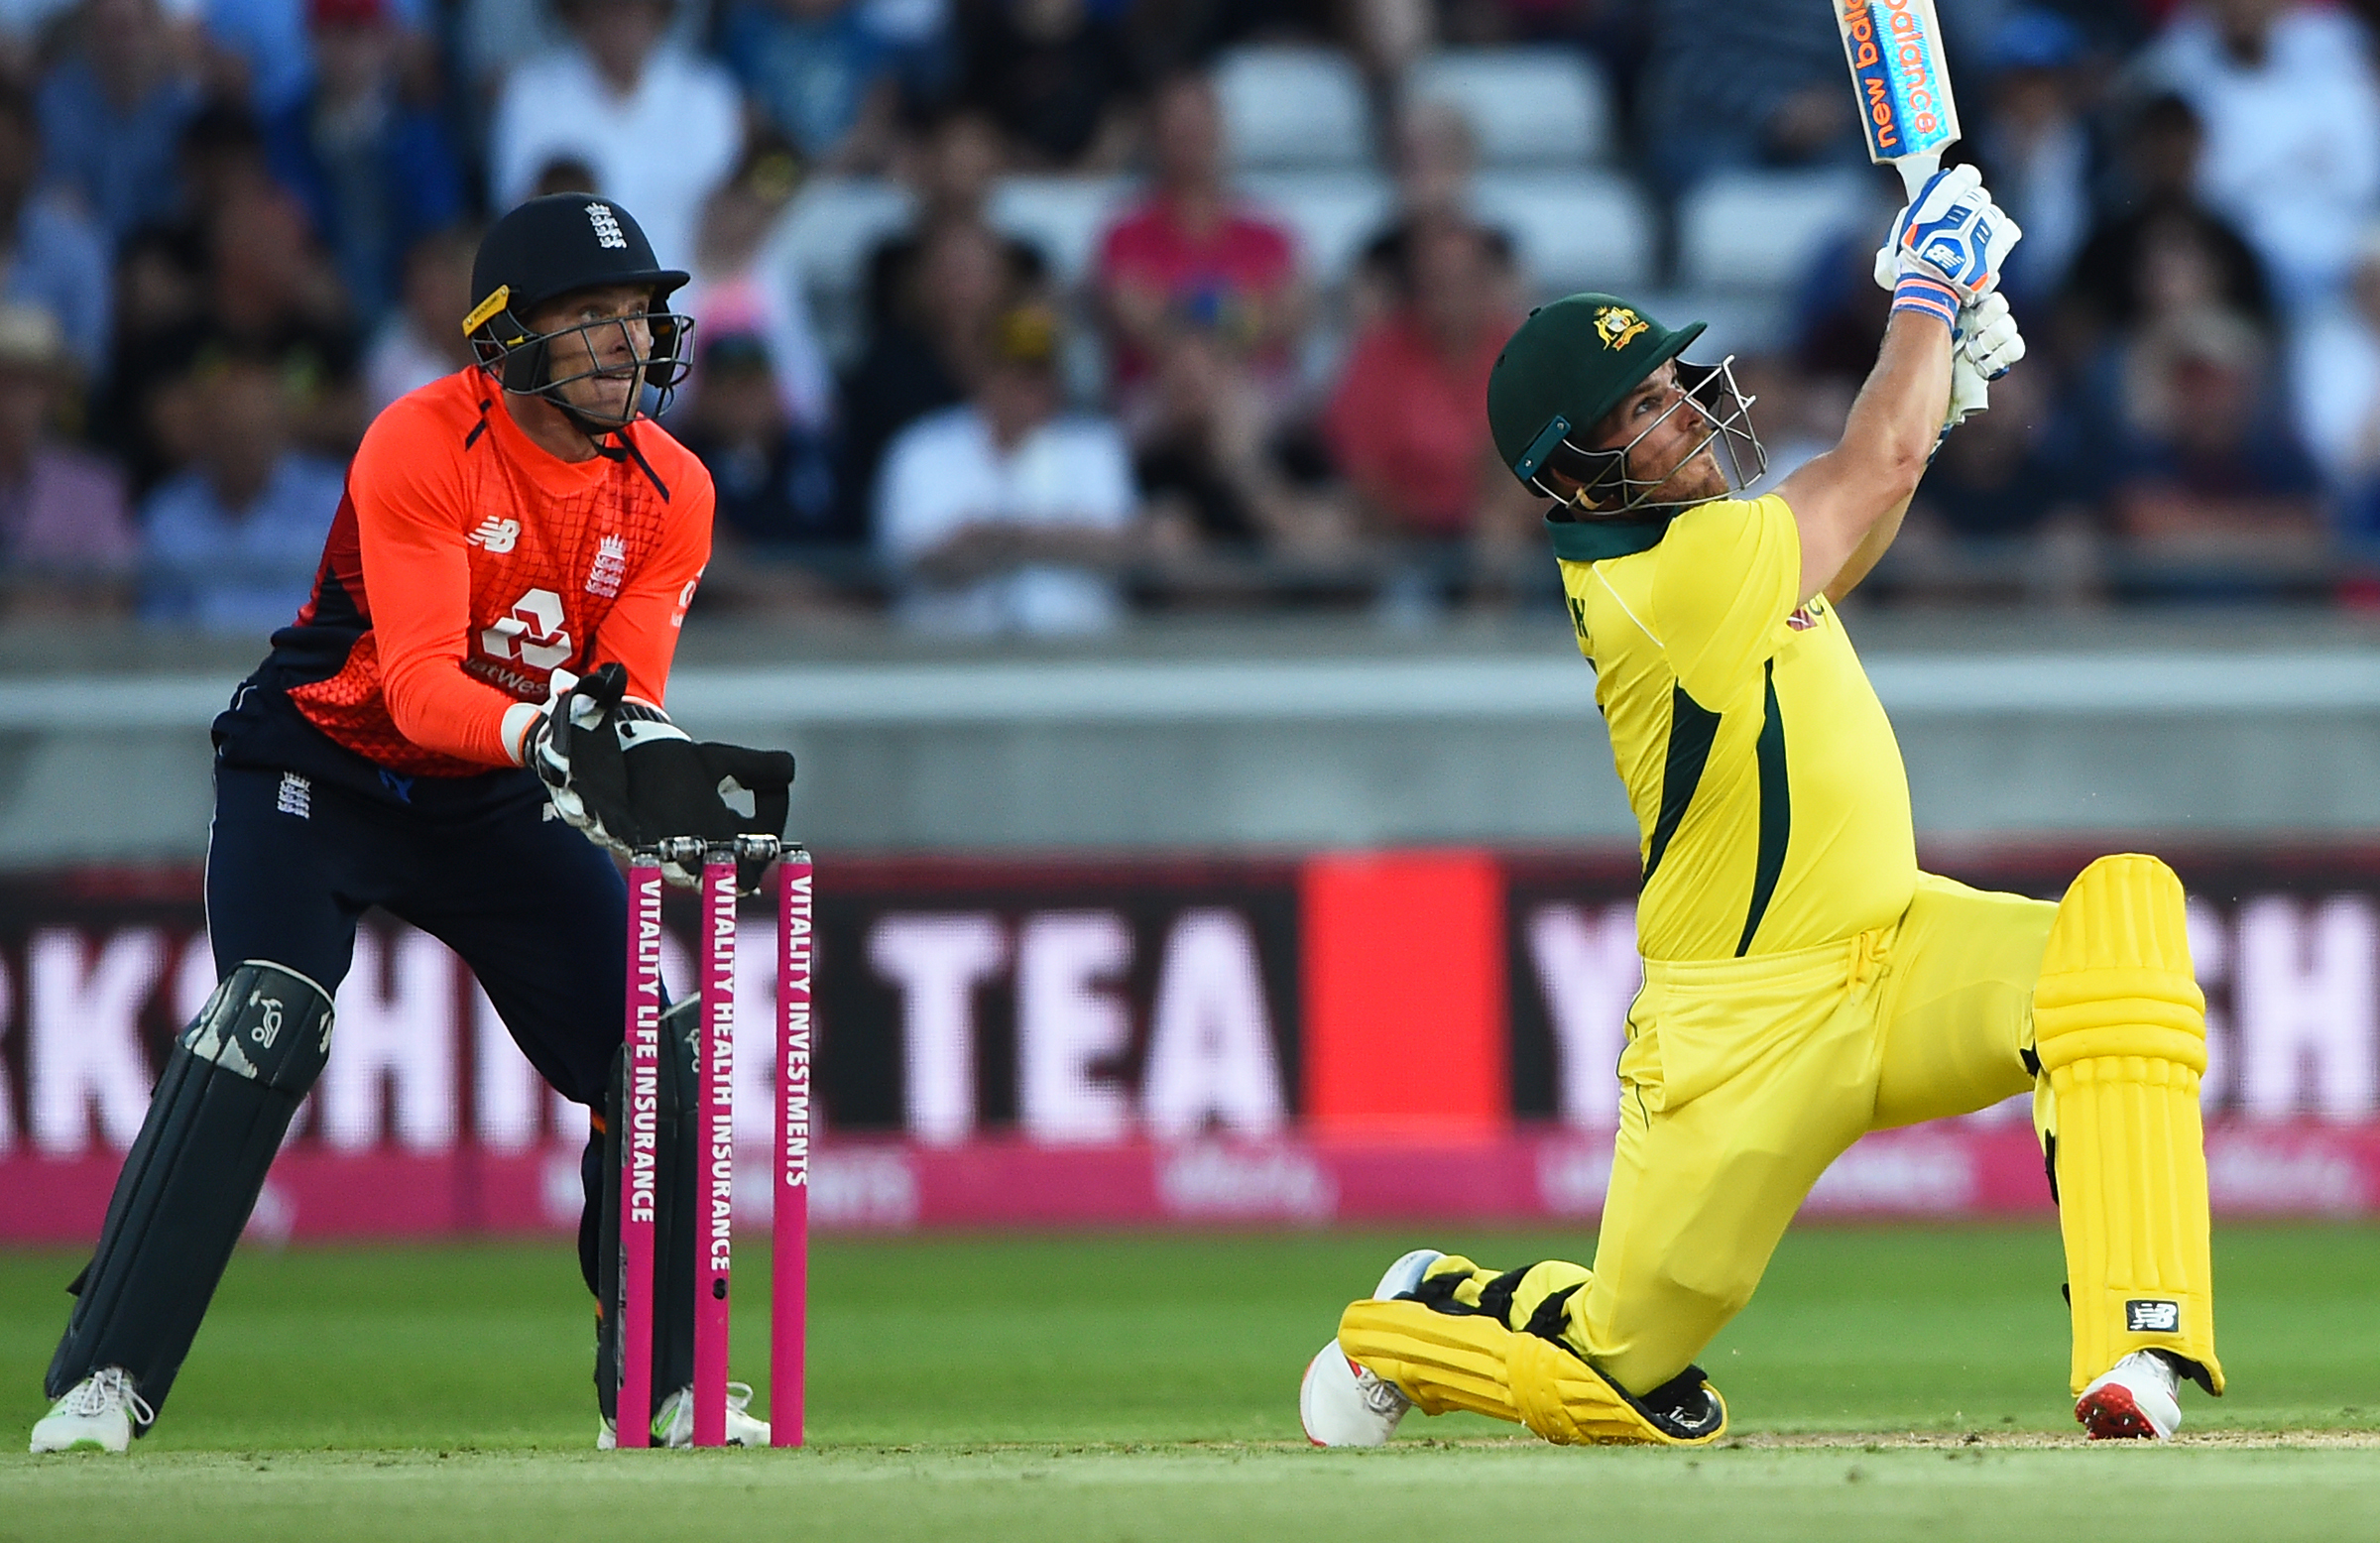 Finch belted six sixes in his 41-ball 84 // Getty